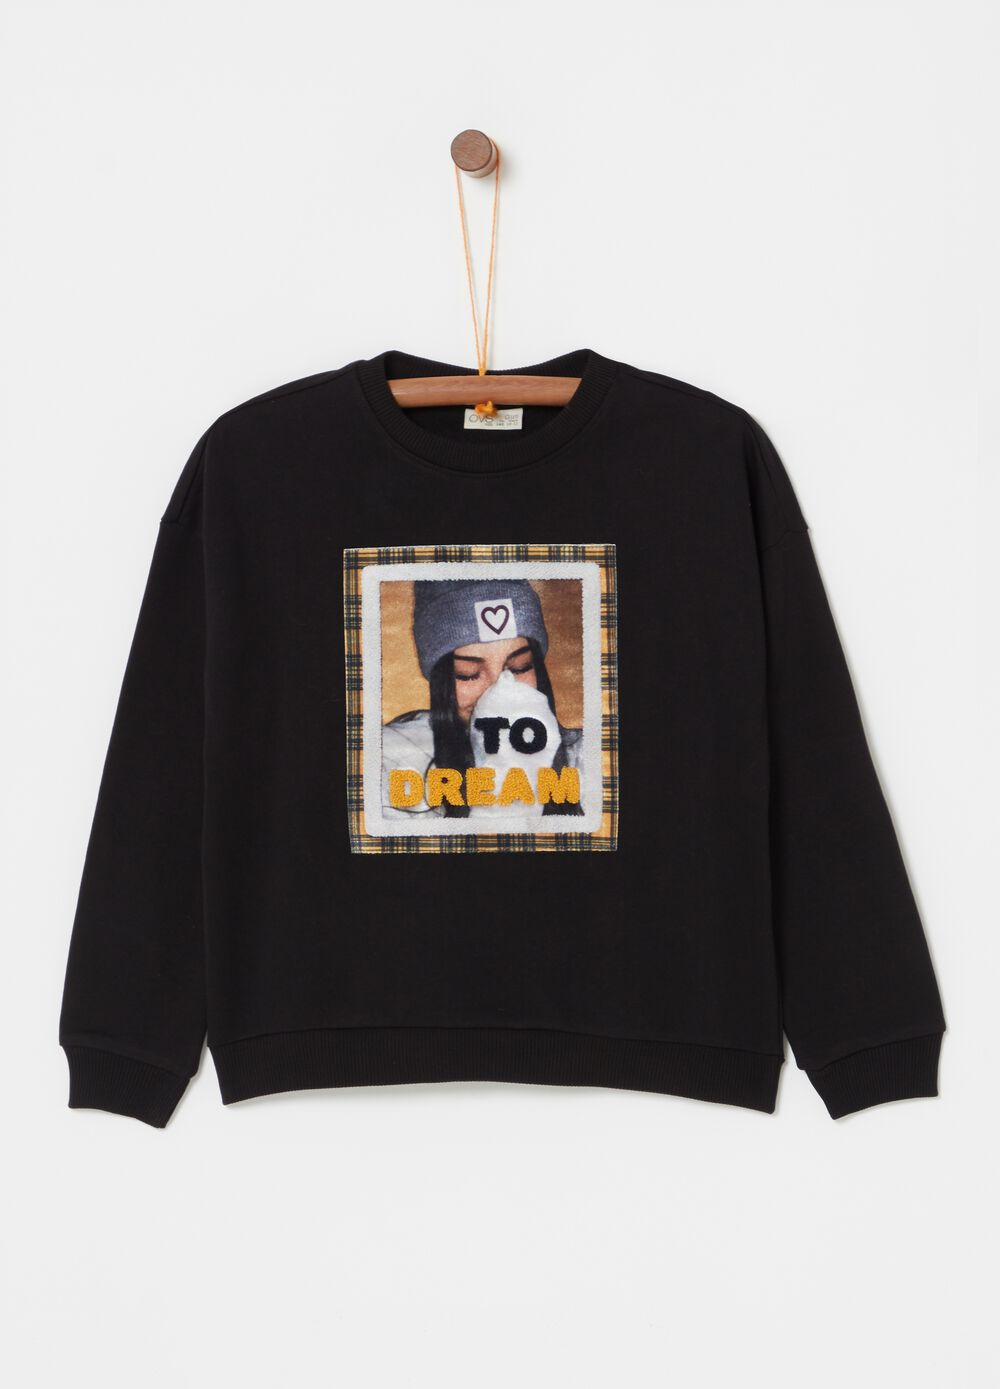 100% organic cotton sweatshirt with patch and print